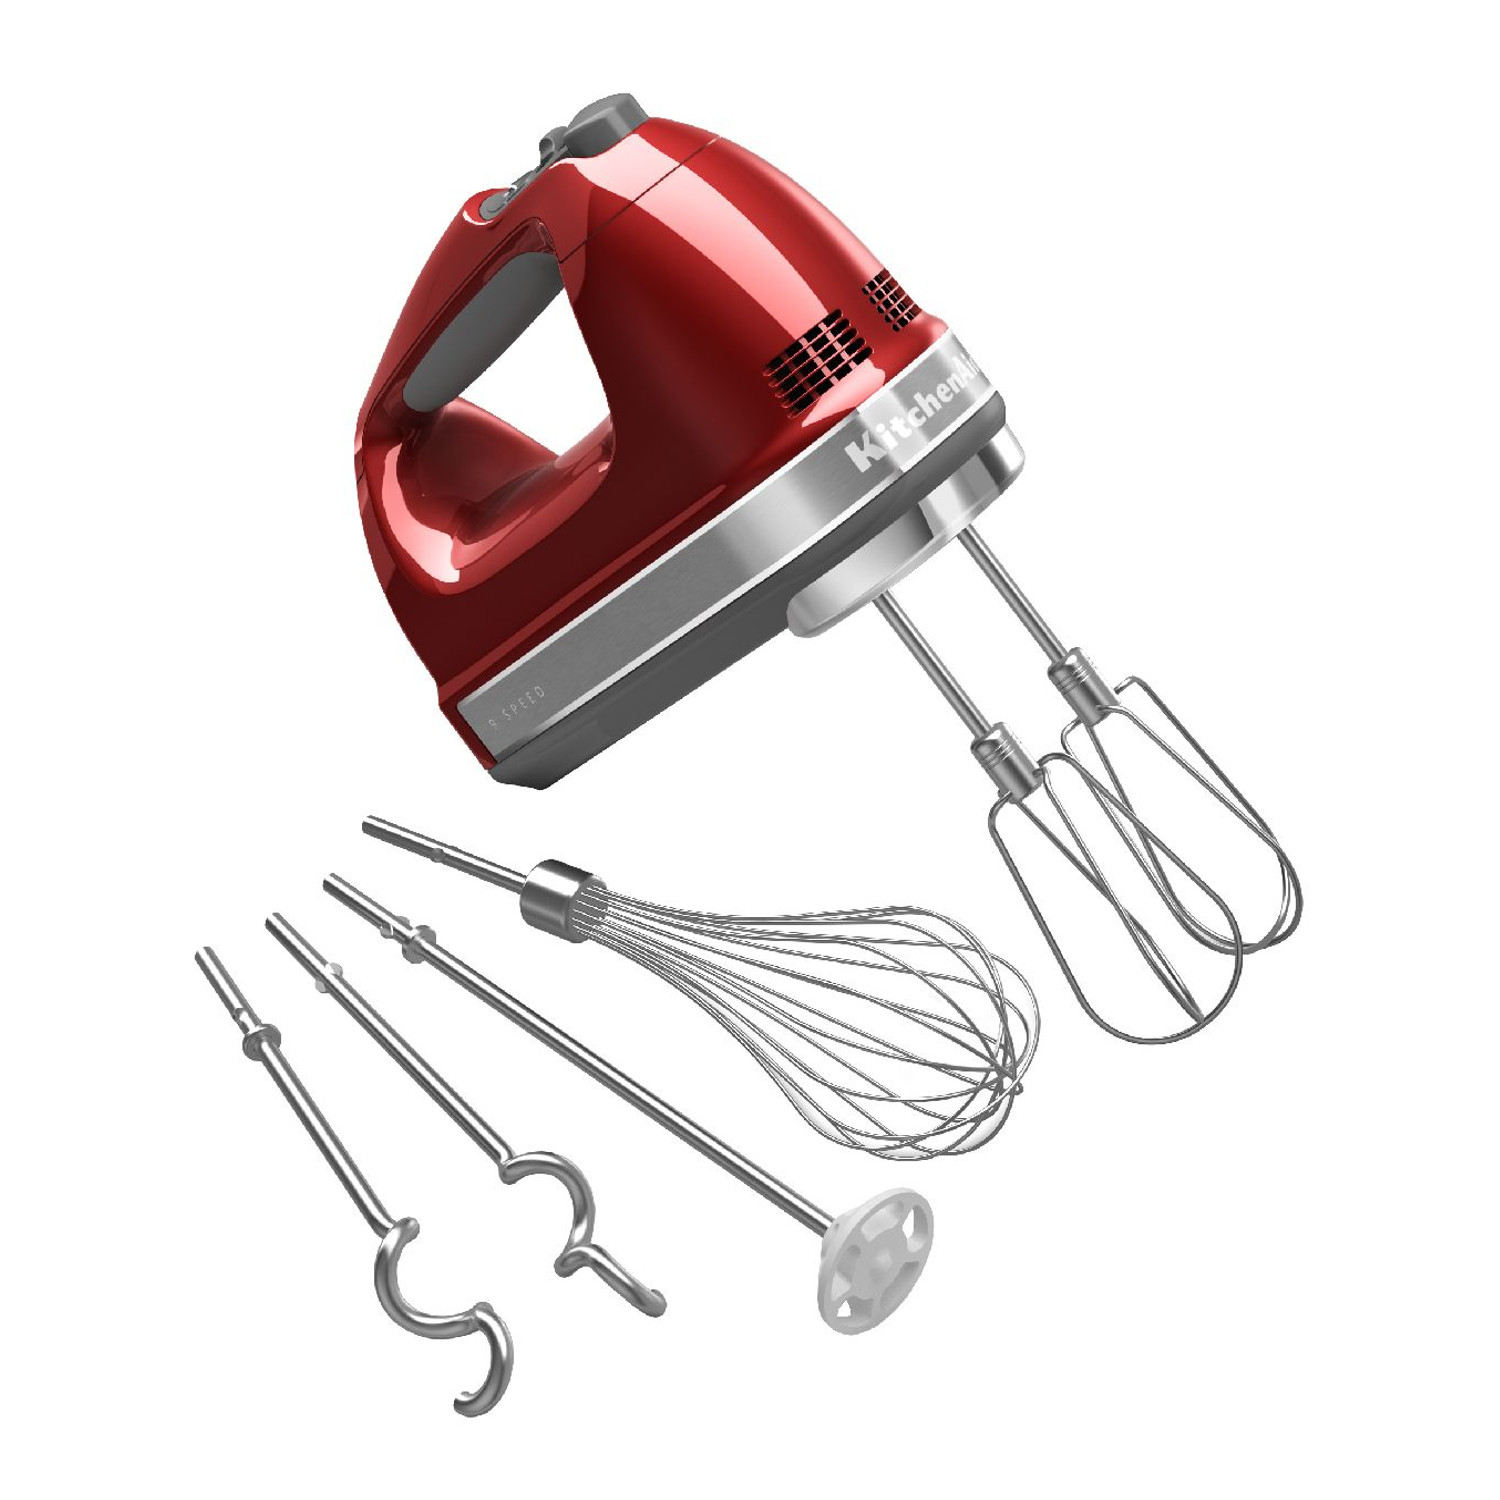 KitchenAid Candy Apple Red 9 Speed Hand Mixer